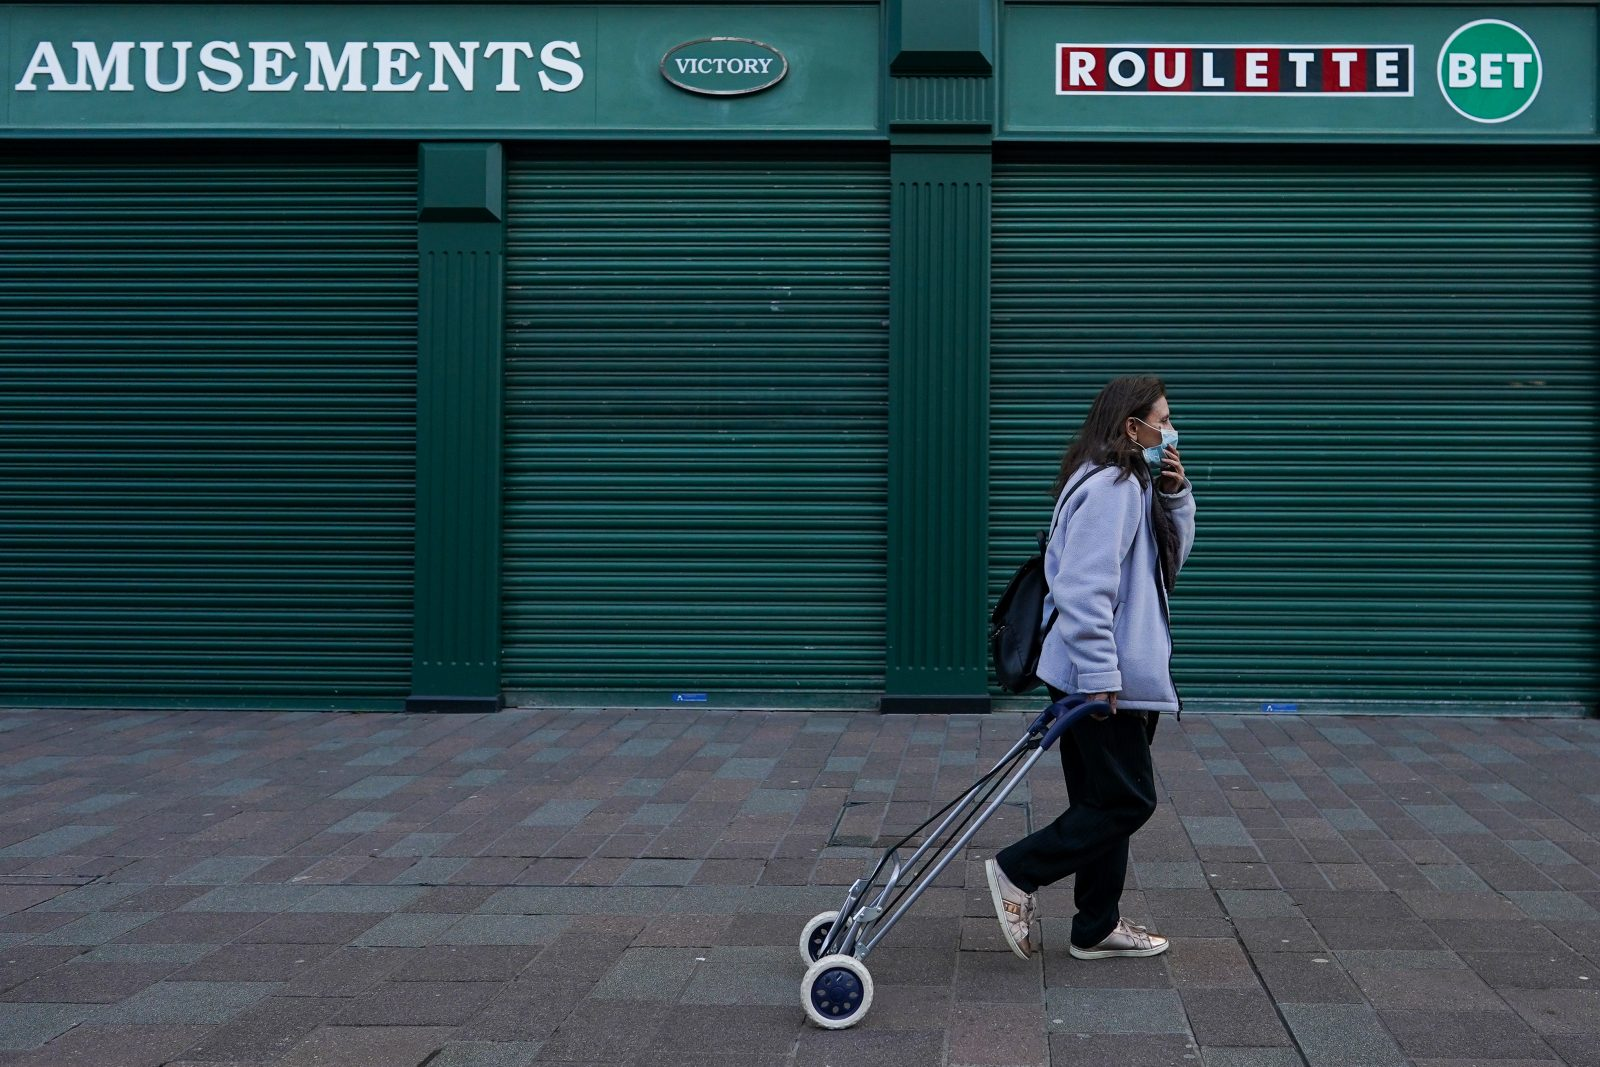 UK borrowing to soar to record £394bn